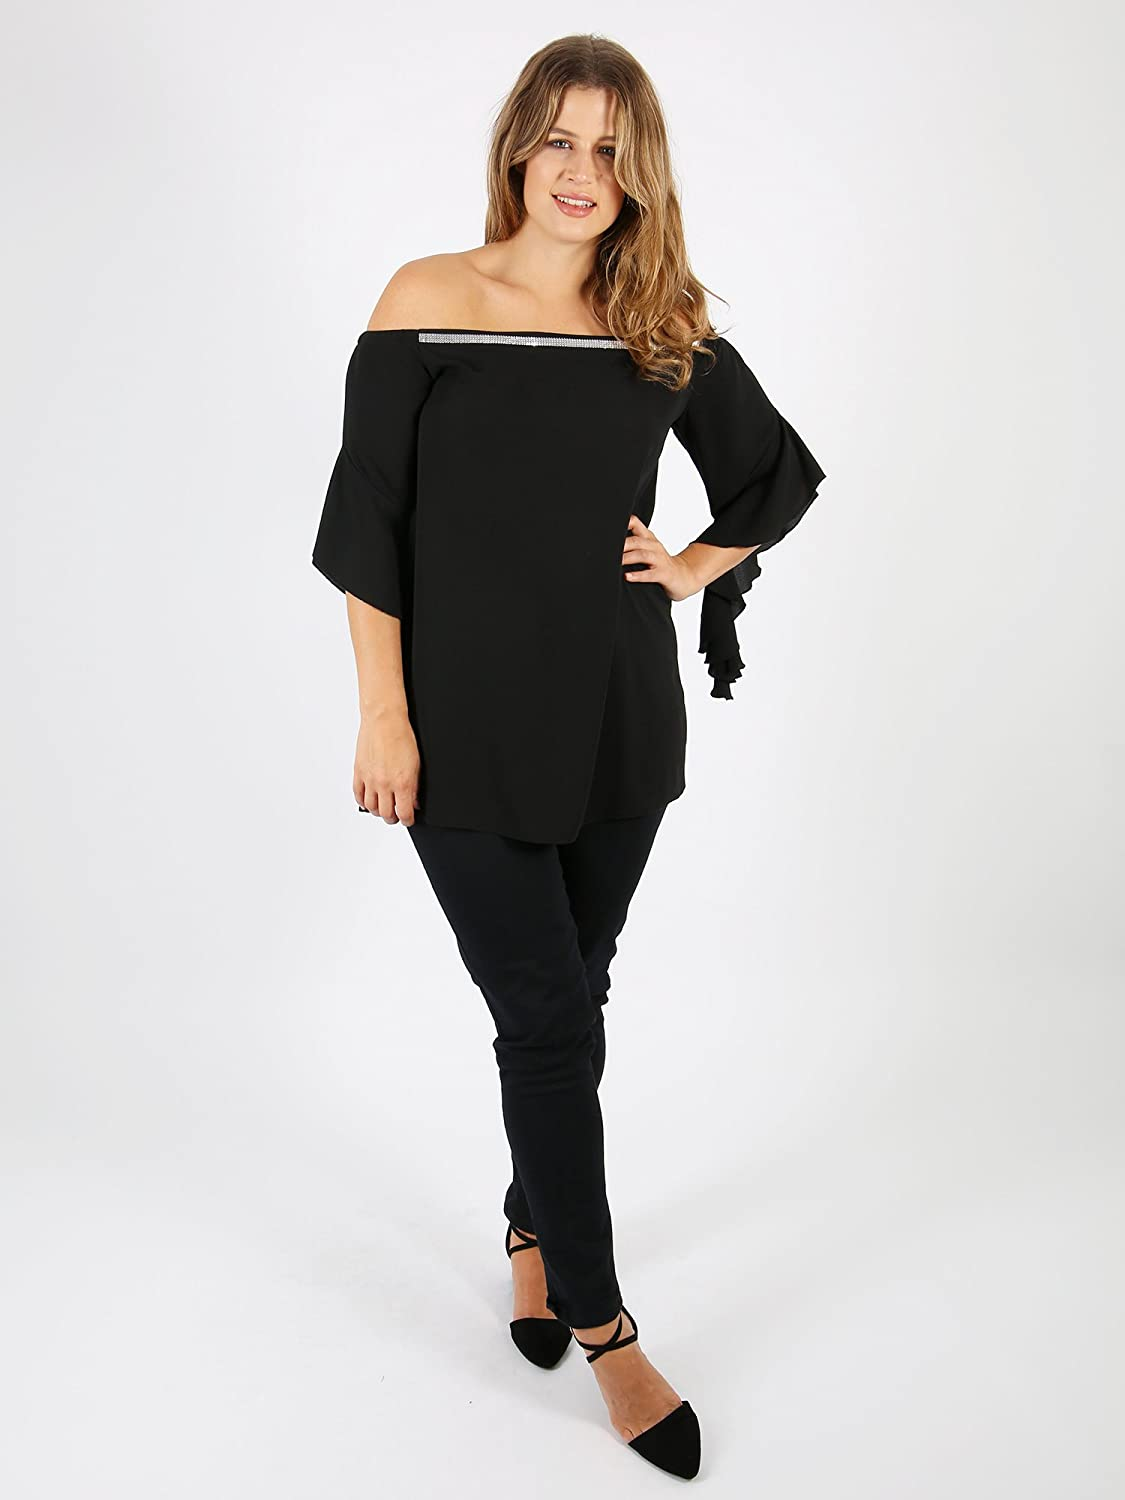 0a815a30764a47 Lovedrobe GB Womens Plus Size Black Bardot Frill Sleeve Top with Silver Trim  (26)  Amazon.co.uk  Clothing